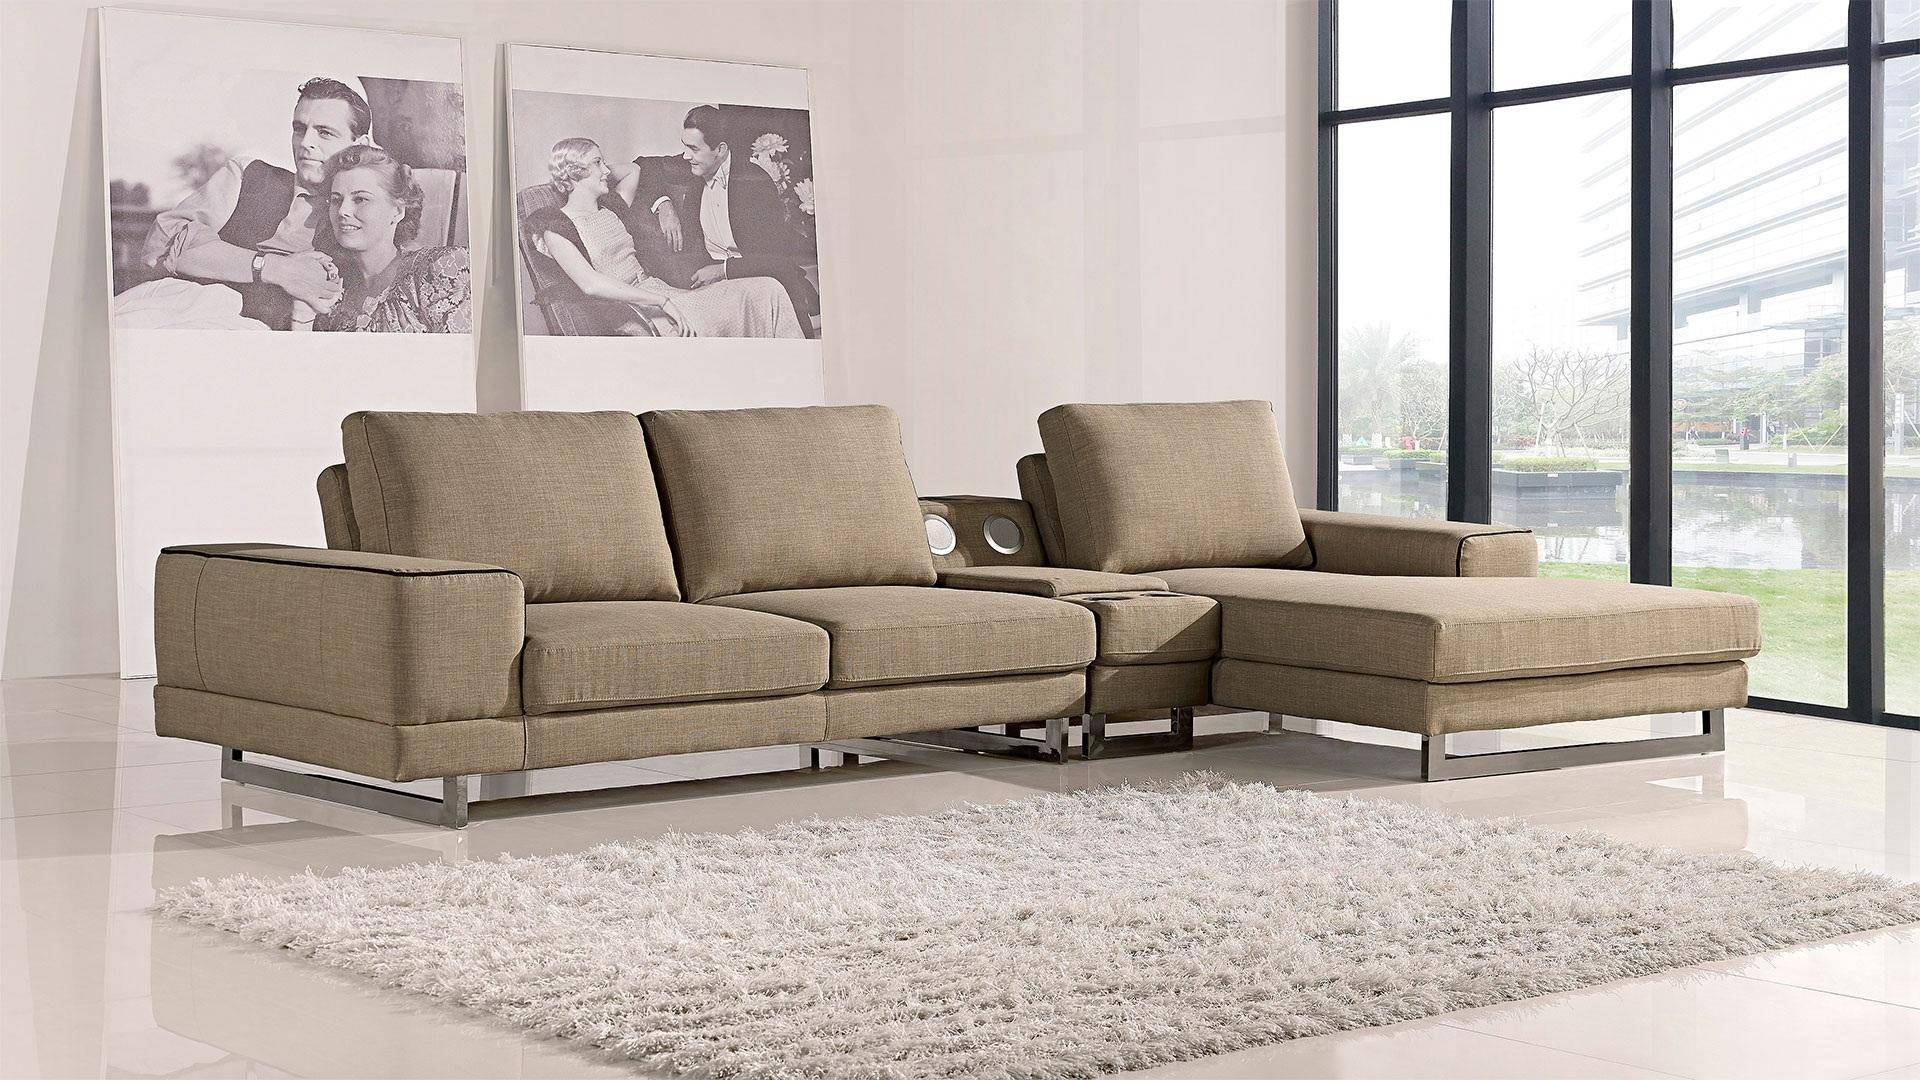 Swell At Home Usa Adele Ultra Modern Beige Fabric Sectional Sofa Ncnpc Chair Design For Home Ncnpcorg